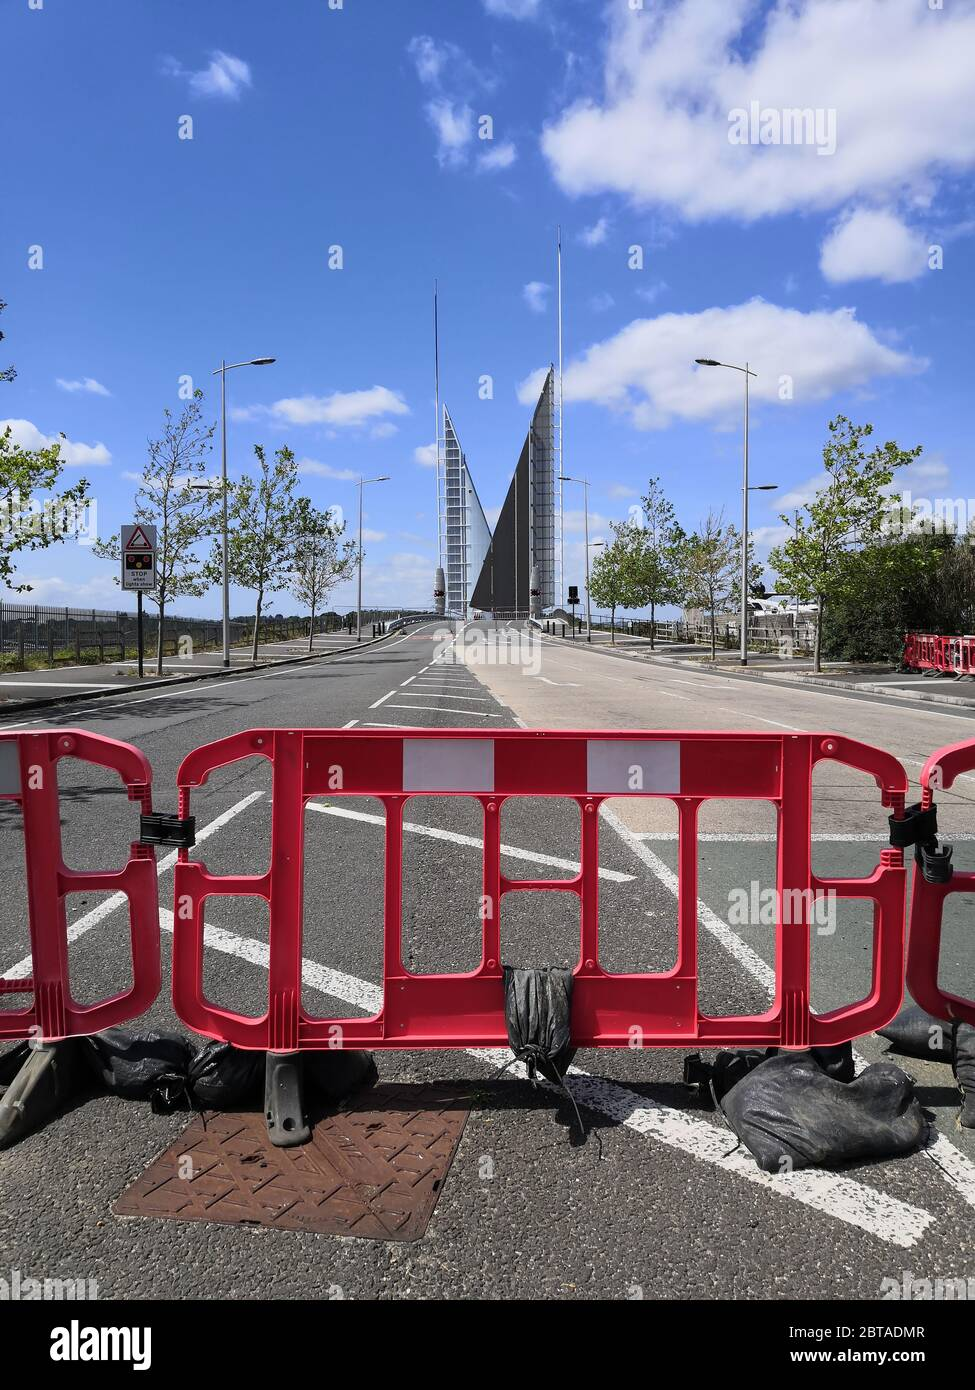 Poole, UK. 24th May, 2020. Poole, UK. Sunday 24 May 2020. The Poole Twin Sails bridge is stuck in the open position as it awaits repairs. It is currently closed to traffic and pedestrians. Credit: Thomas Faull/Alamy Live News Stock Photo